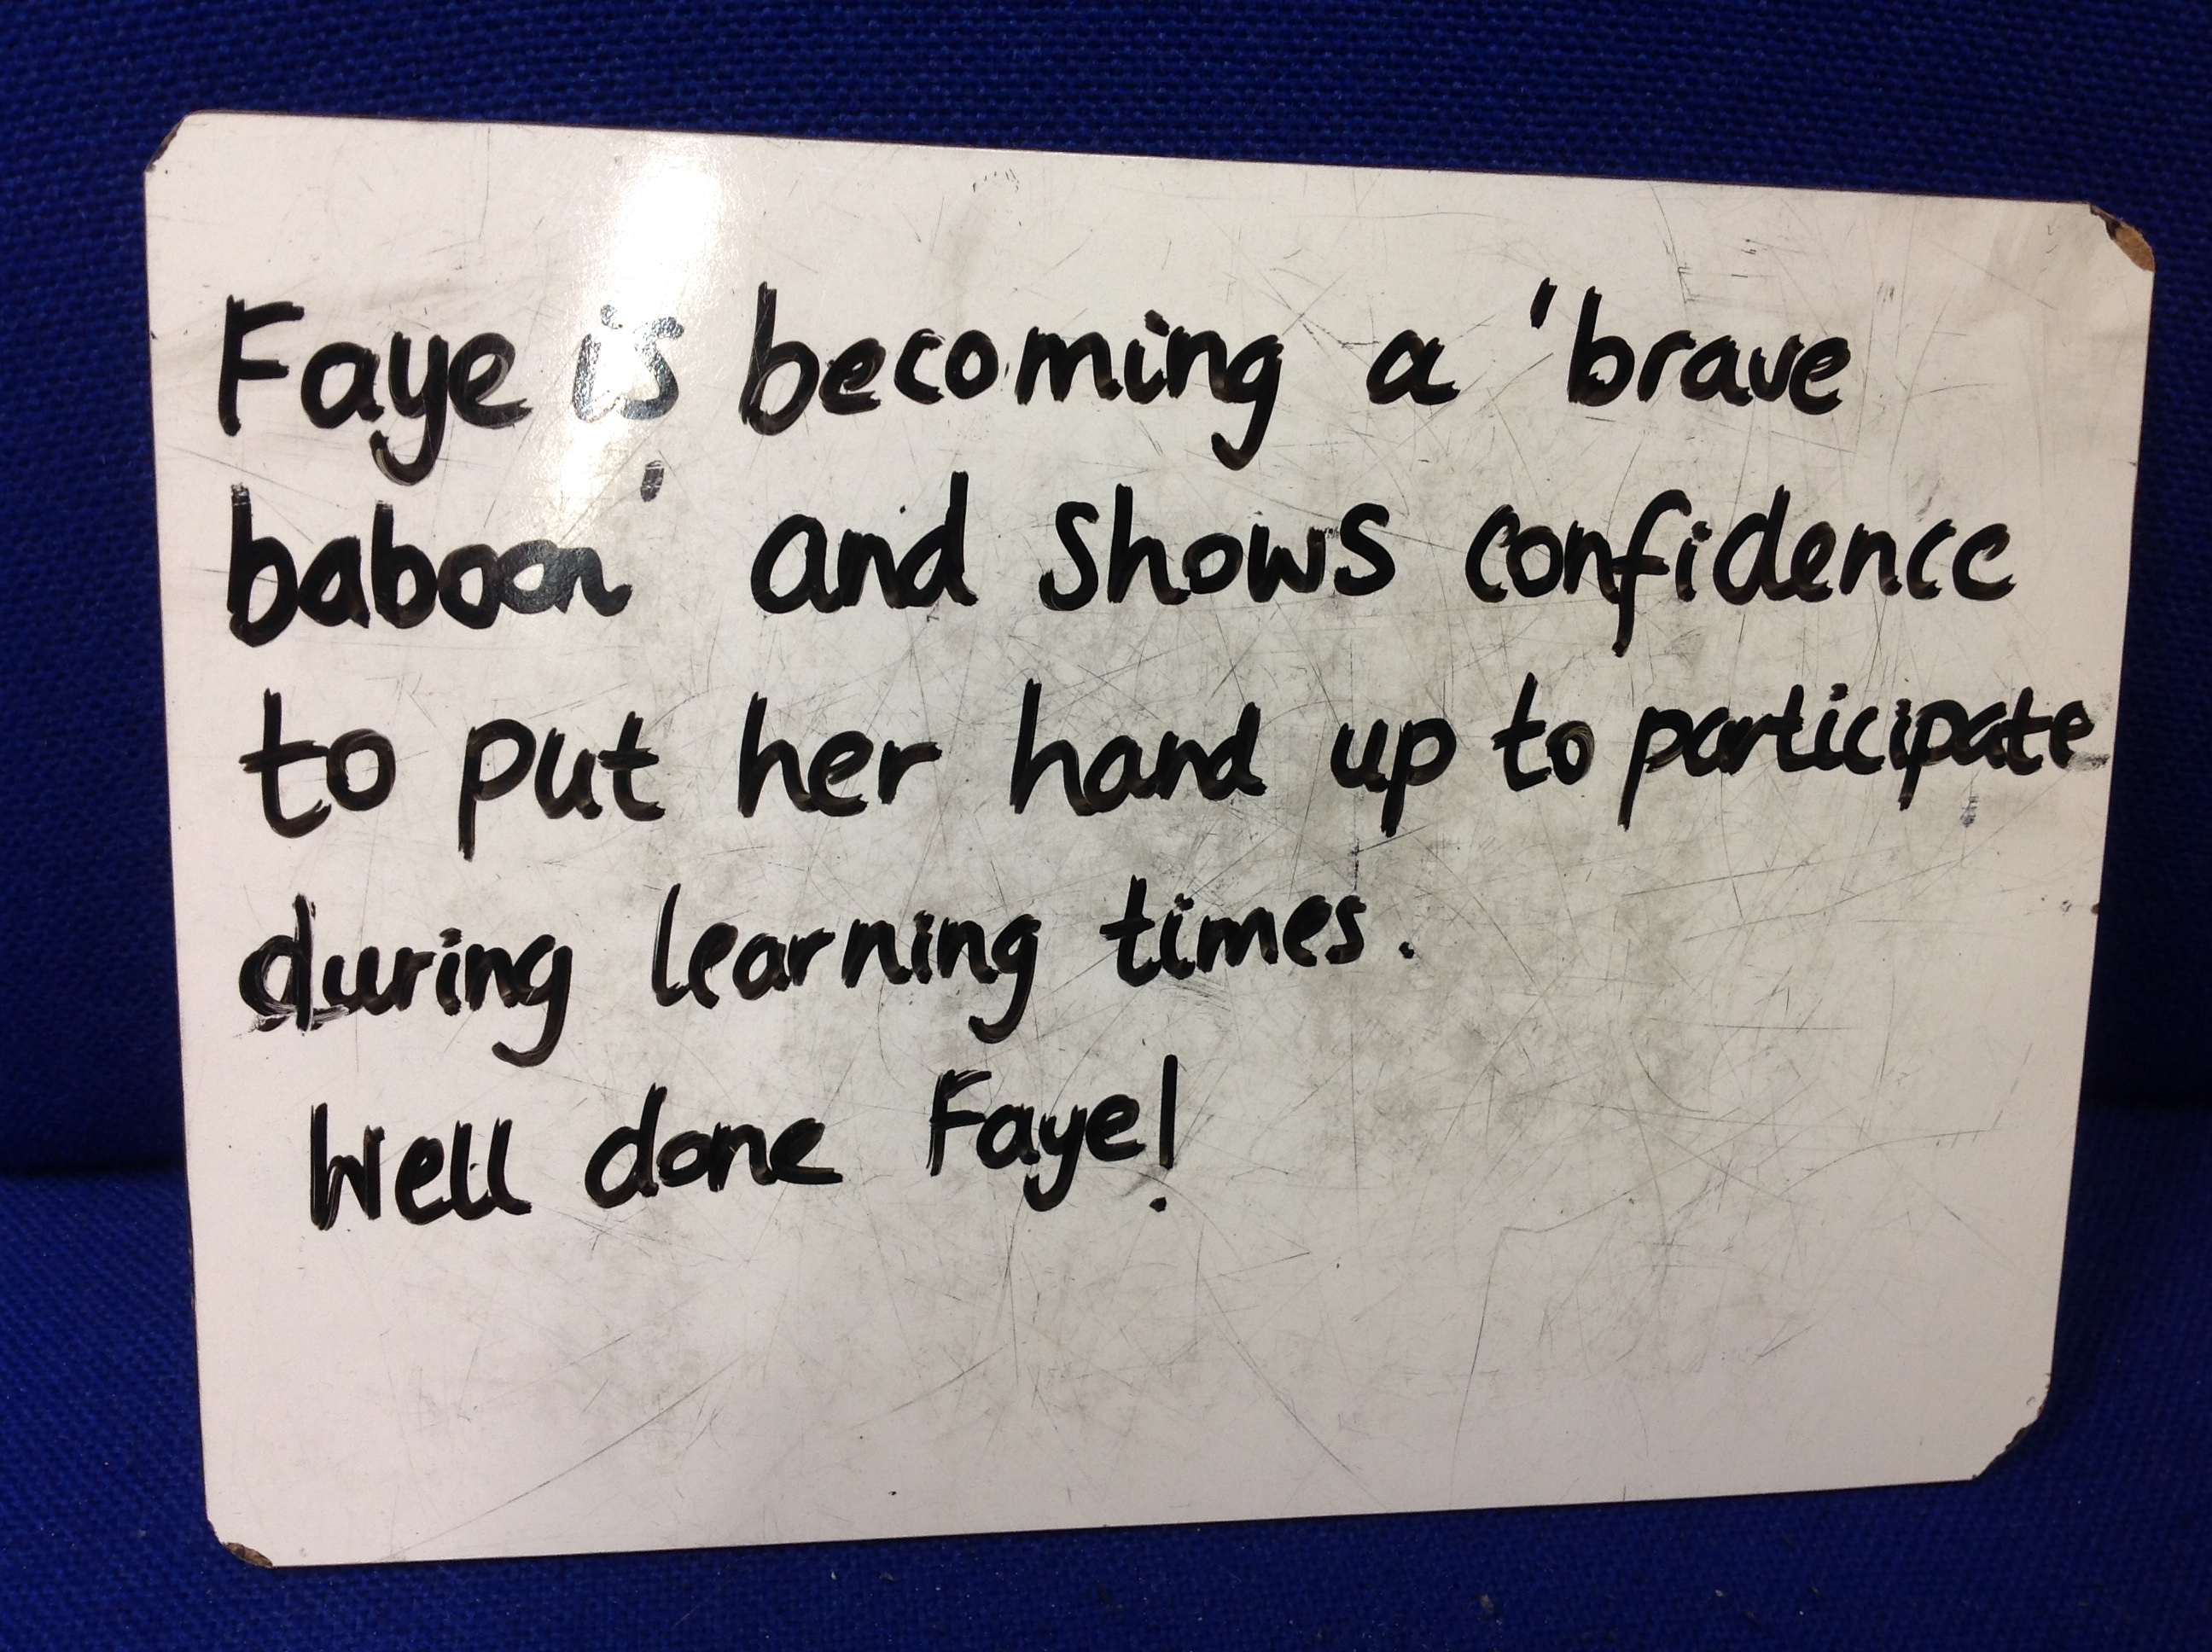 Faye's brilliant confidence!